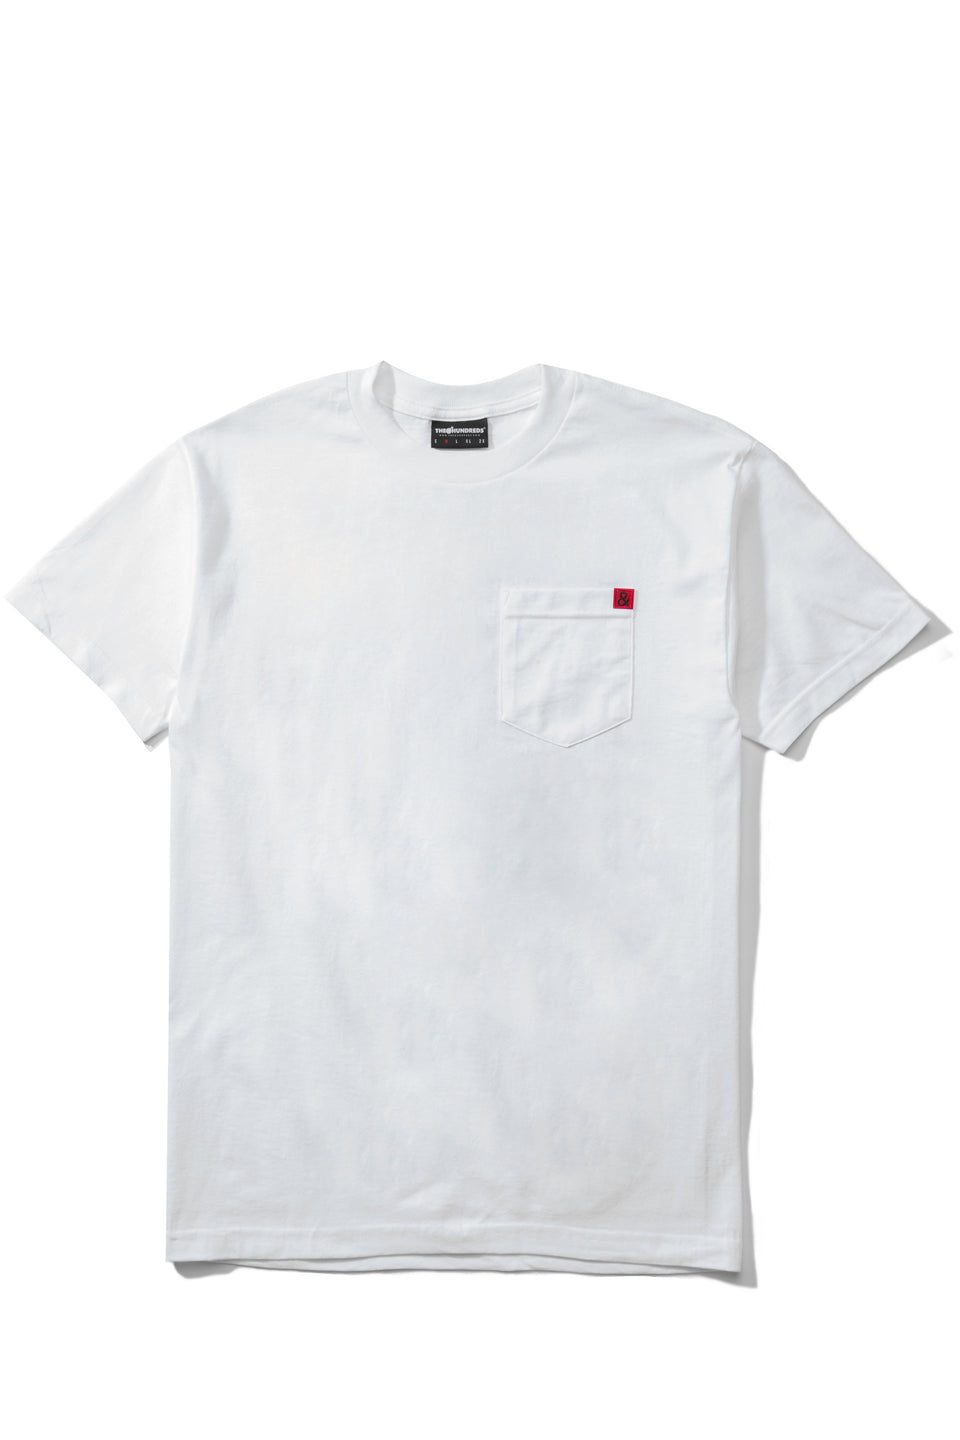 Soto Pocket T-Shirt